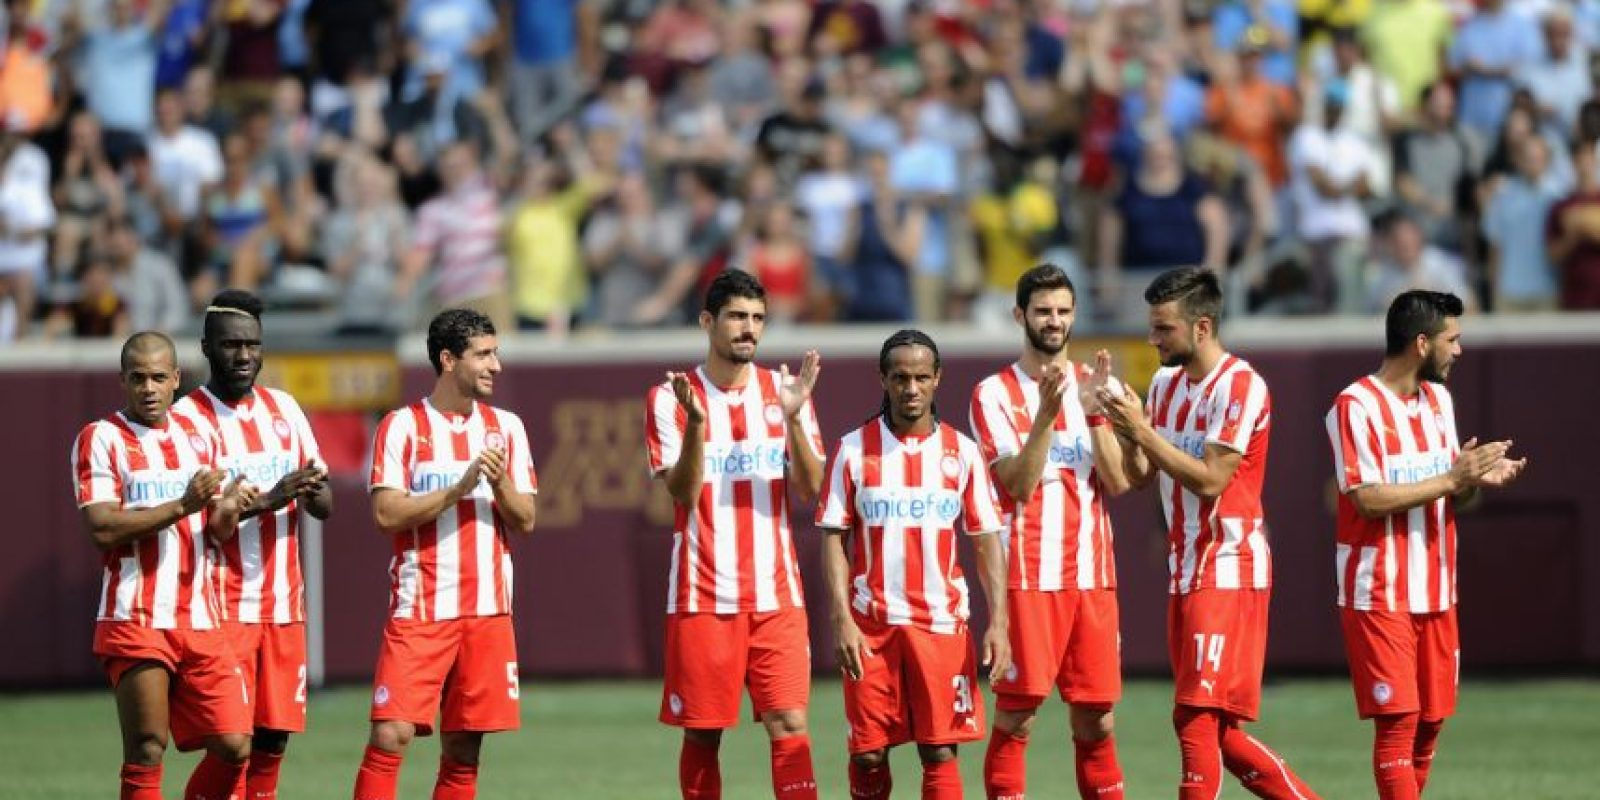 Olympiacos (Grecia) Foto:Getty Images